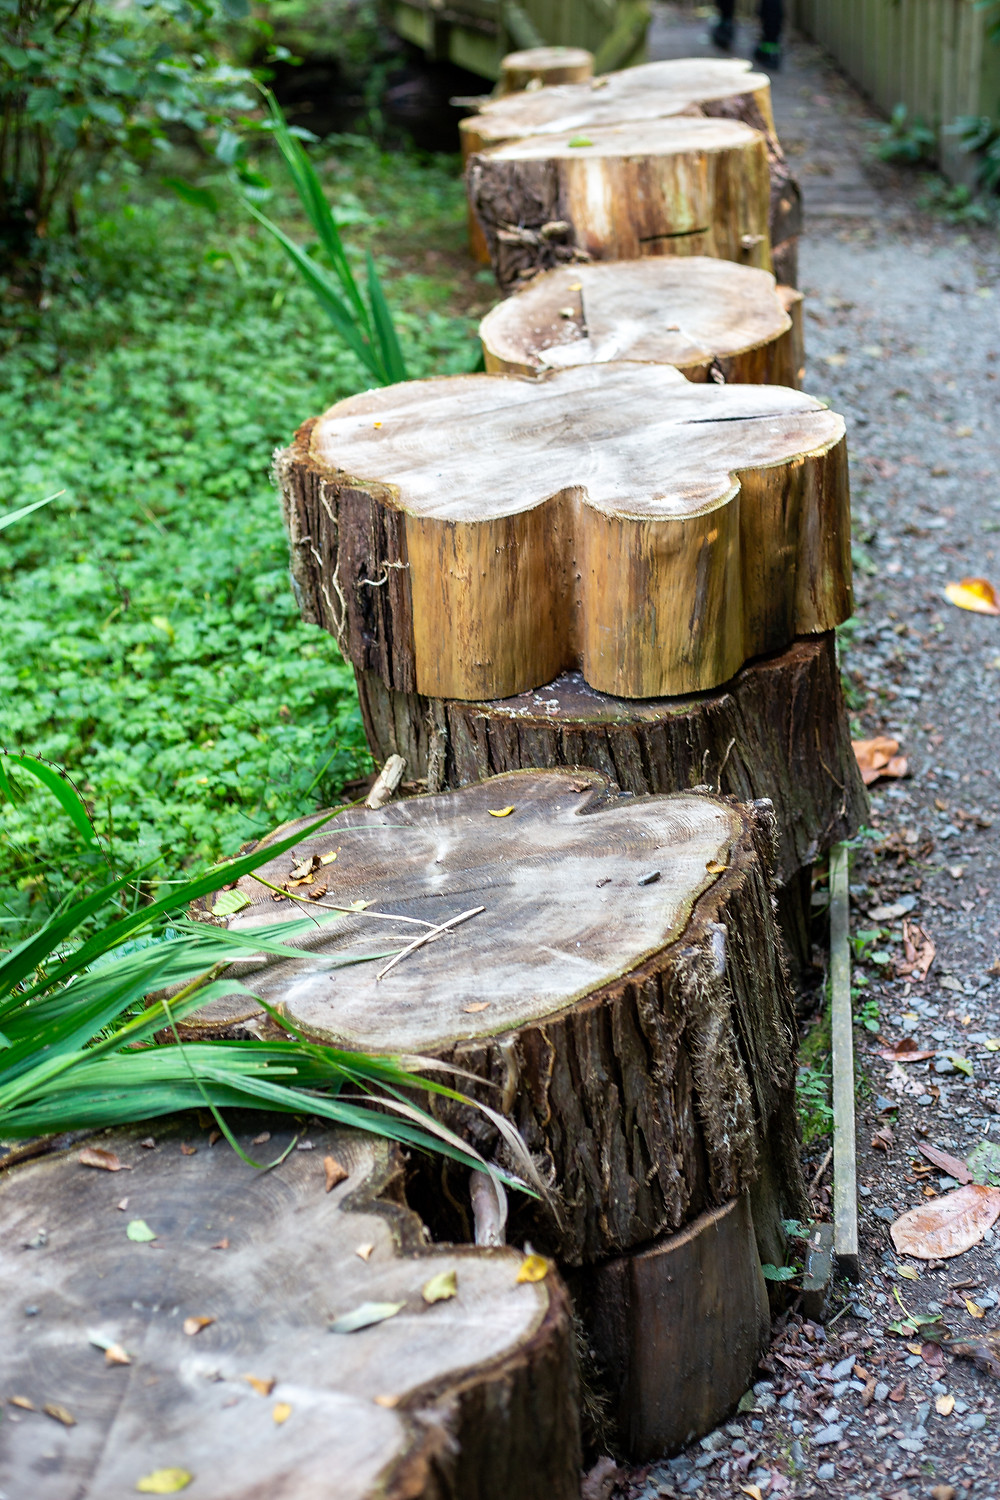 wooden logs in piles